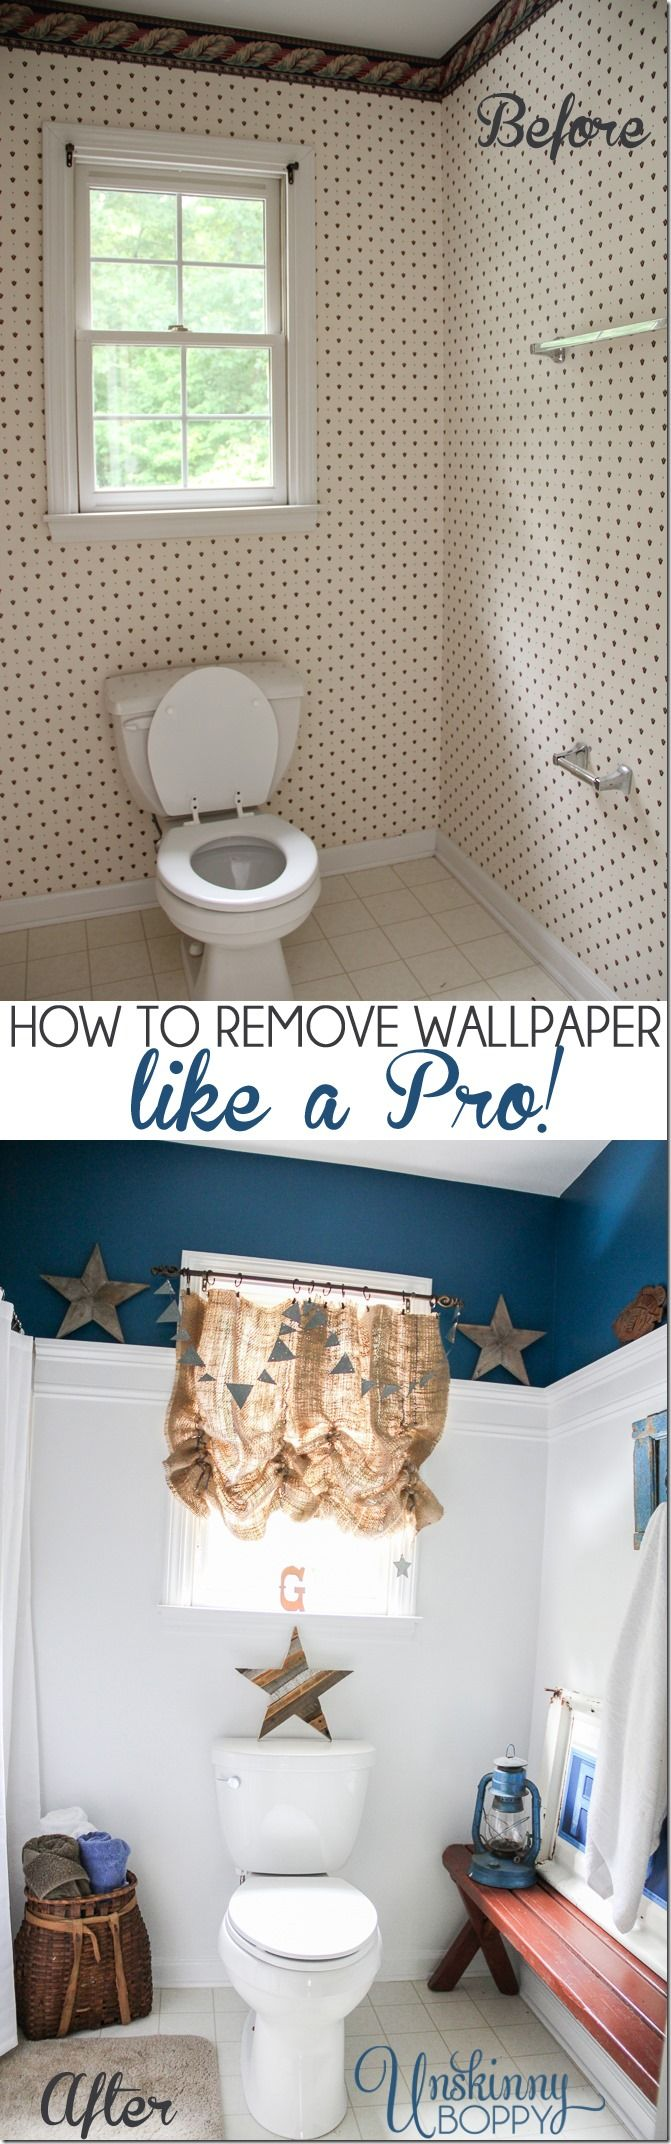 How to Remove Wallpaper like a Pro